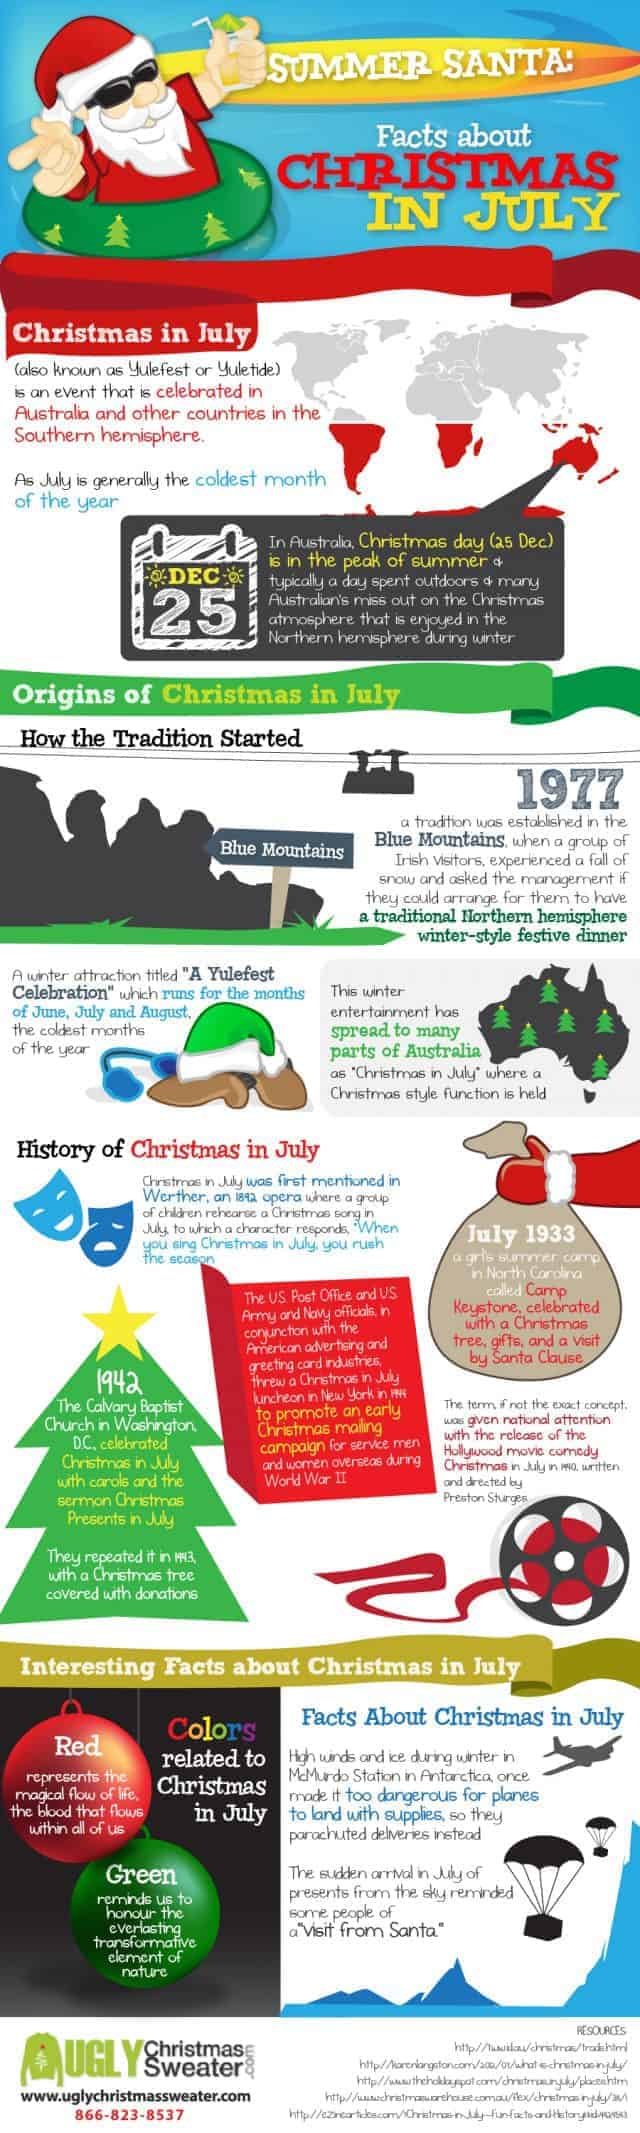 christmas-in-july-infographic-640x2133